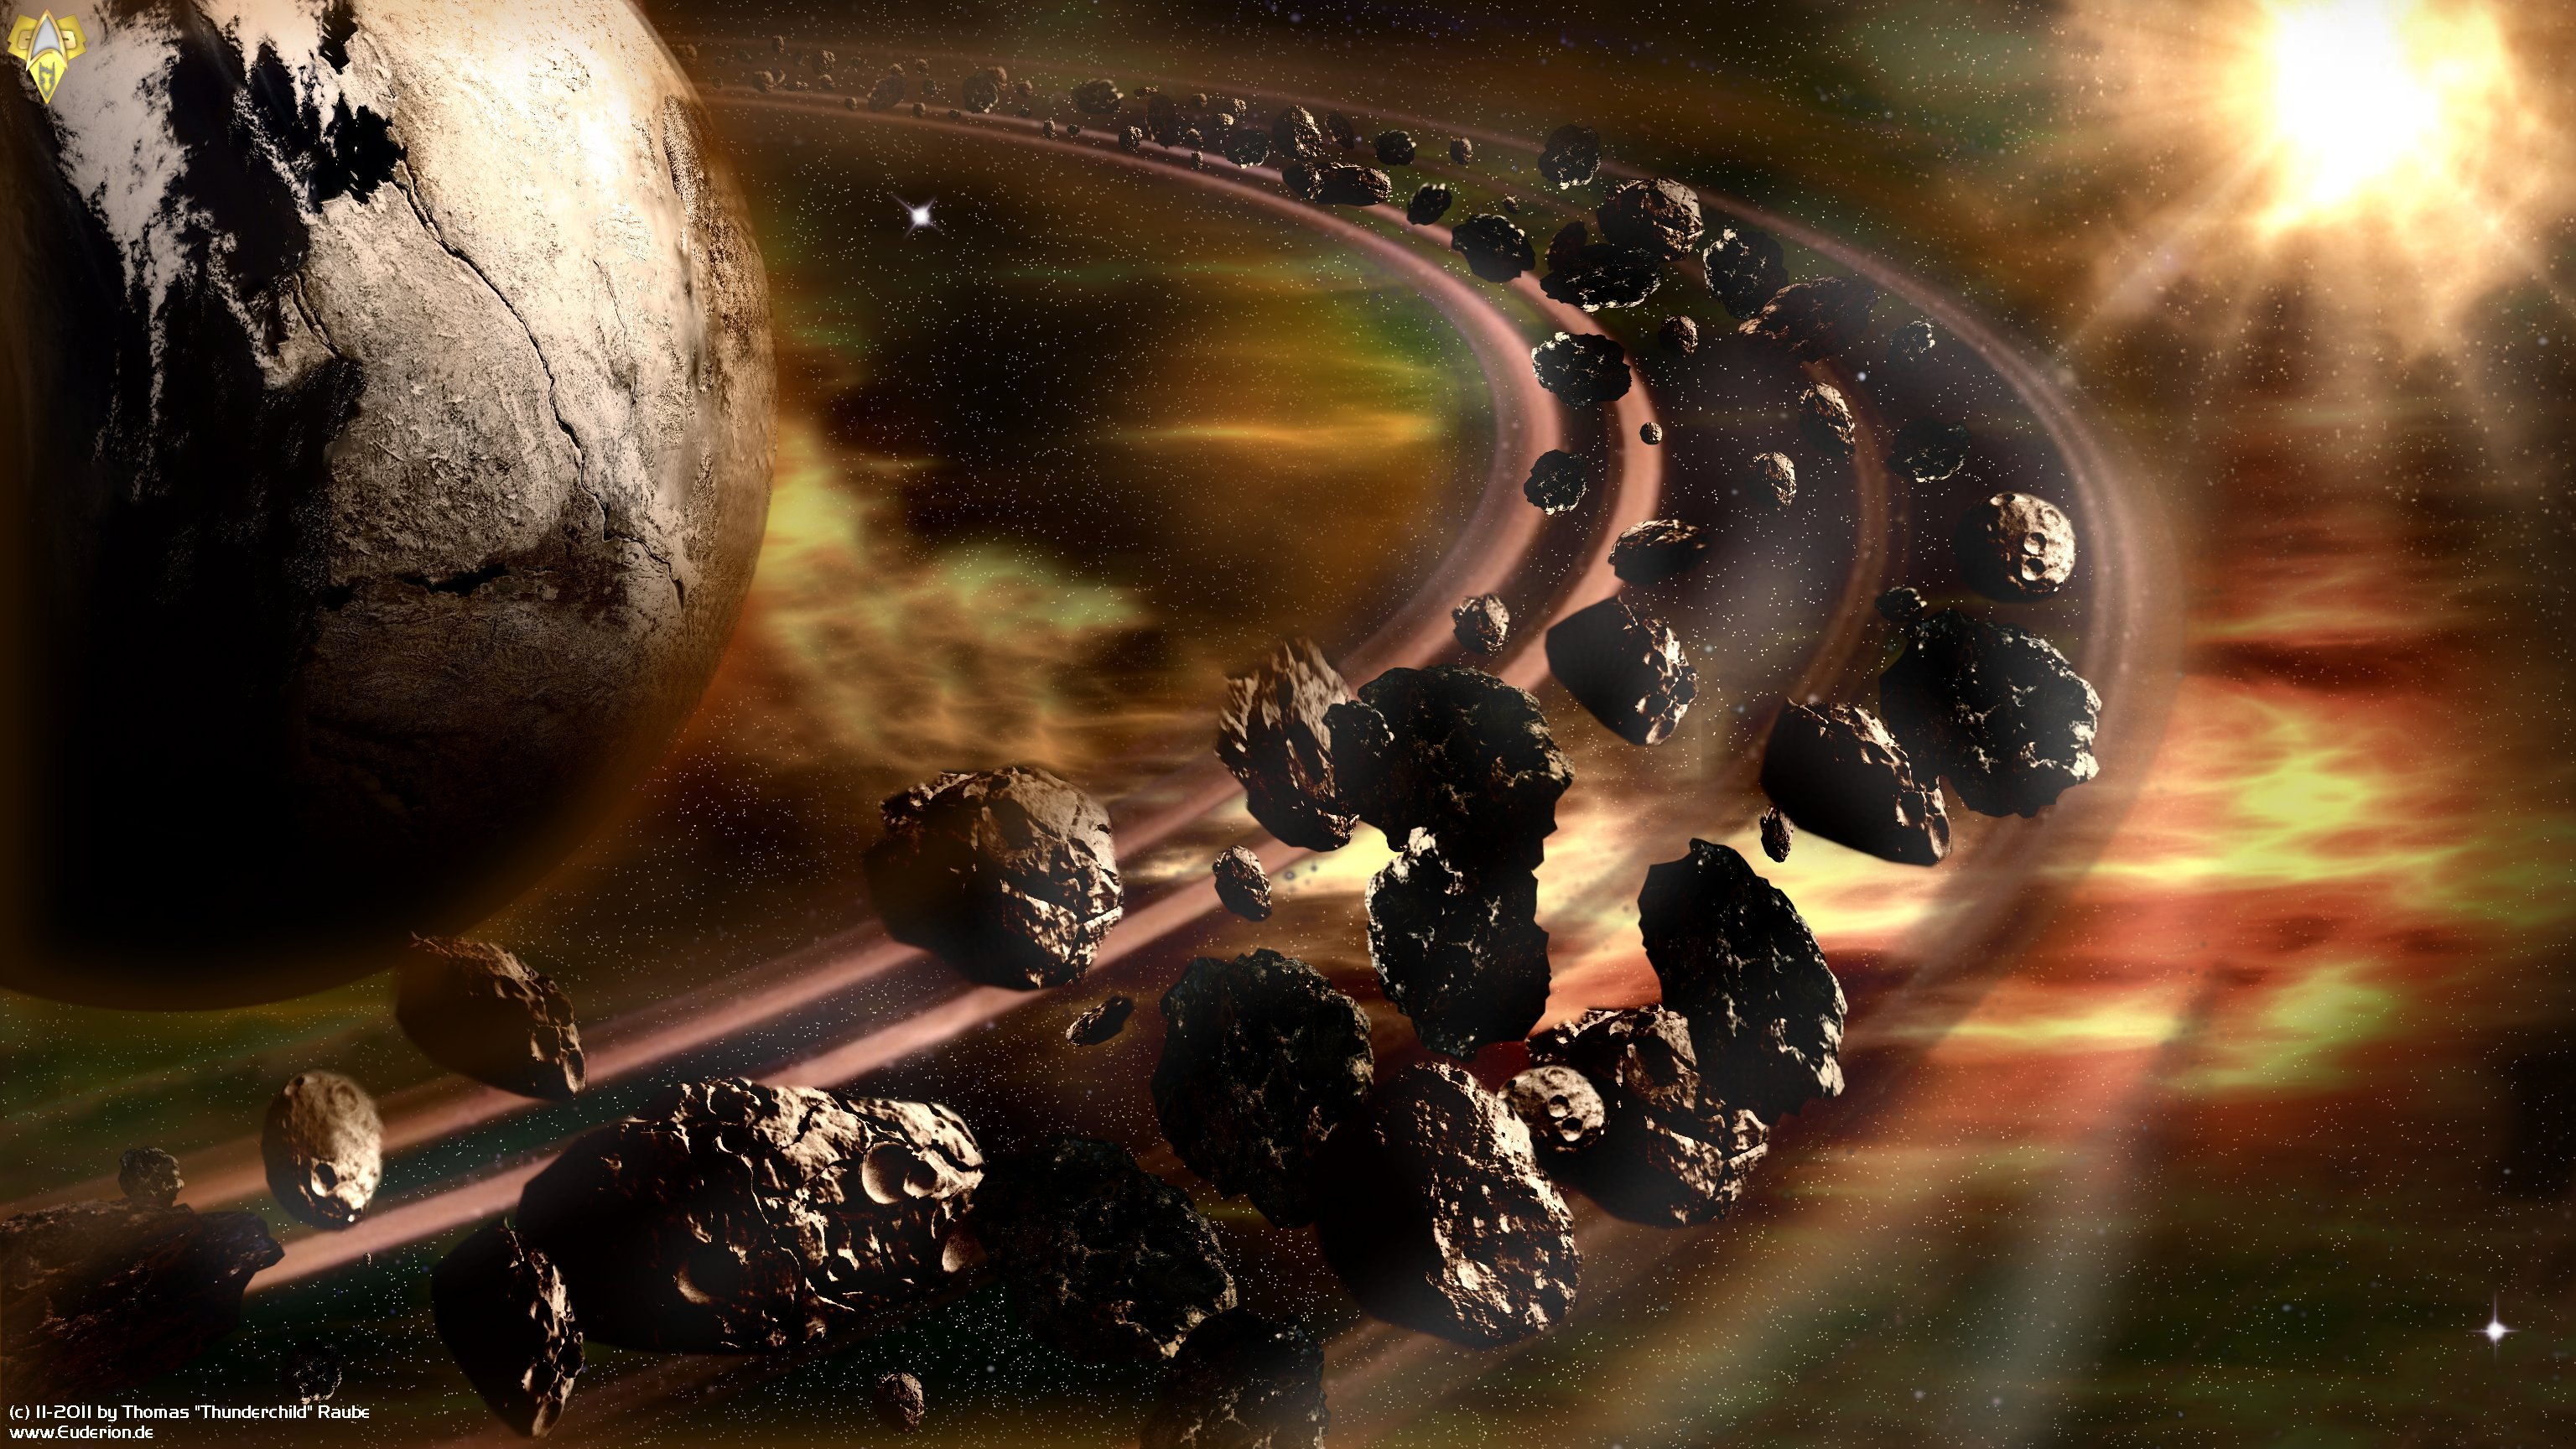 3d Live Wallpaper For Galaxy Y Asteroid Ring Full Hd Wallpaper And Background Image